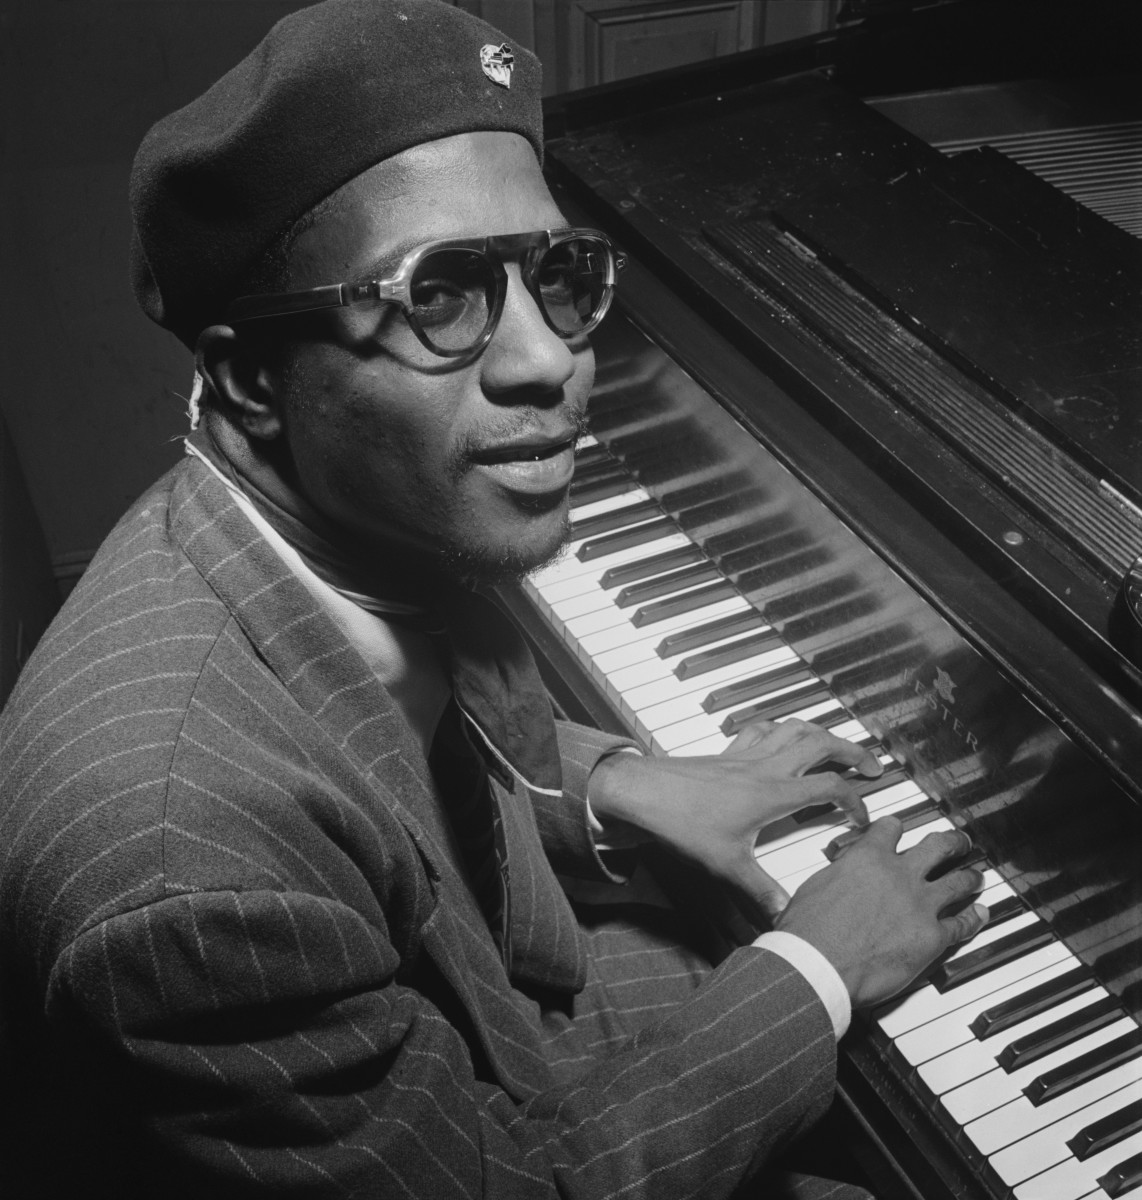 Thelonious Monk, Minton's Playhouse, New York, ca. September 1947. Photograph by William P. Gottlieb - entered into the public domain on February 16, 2010